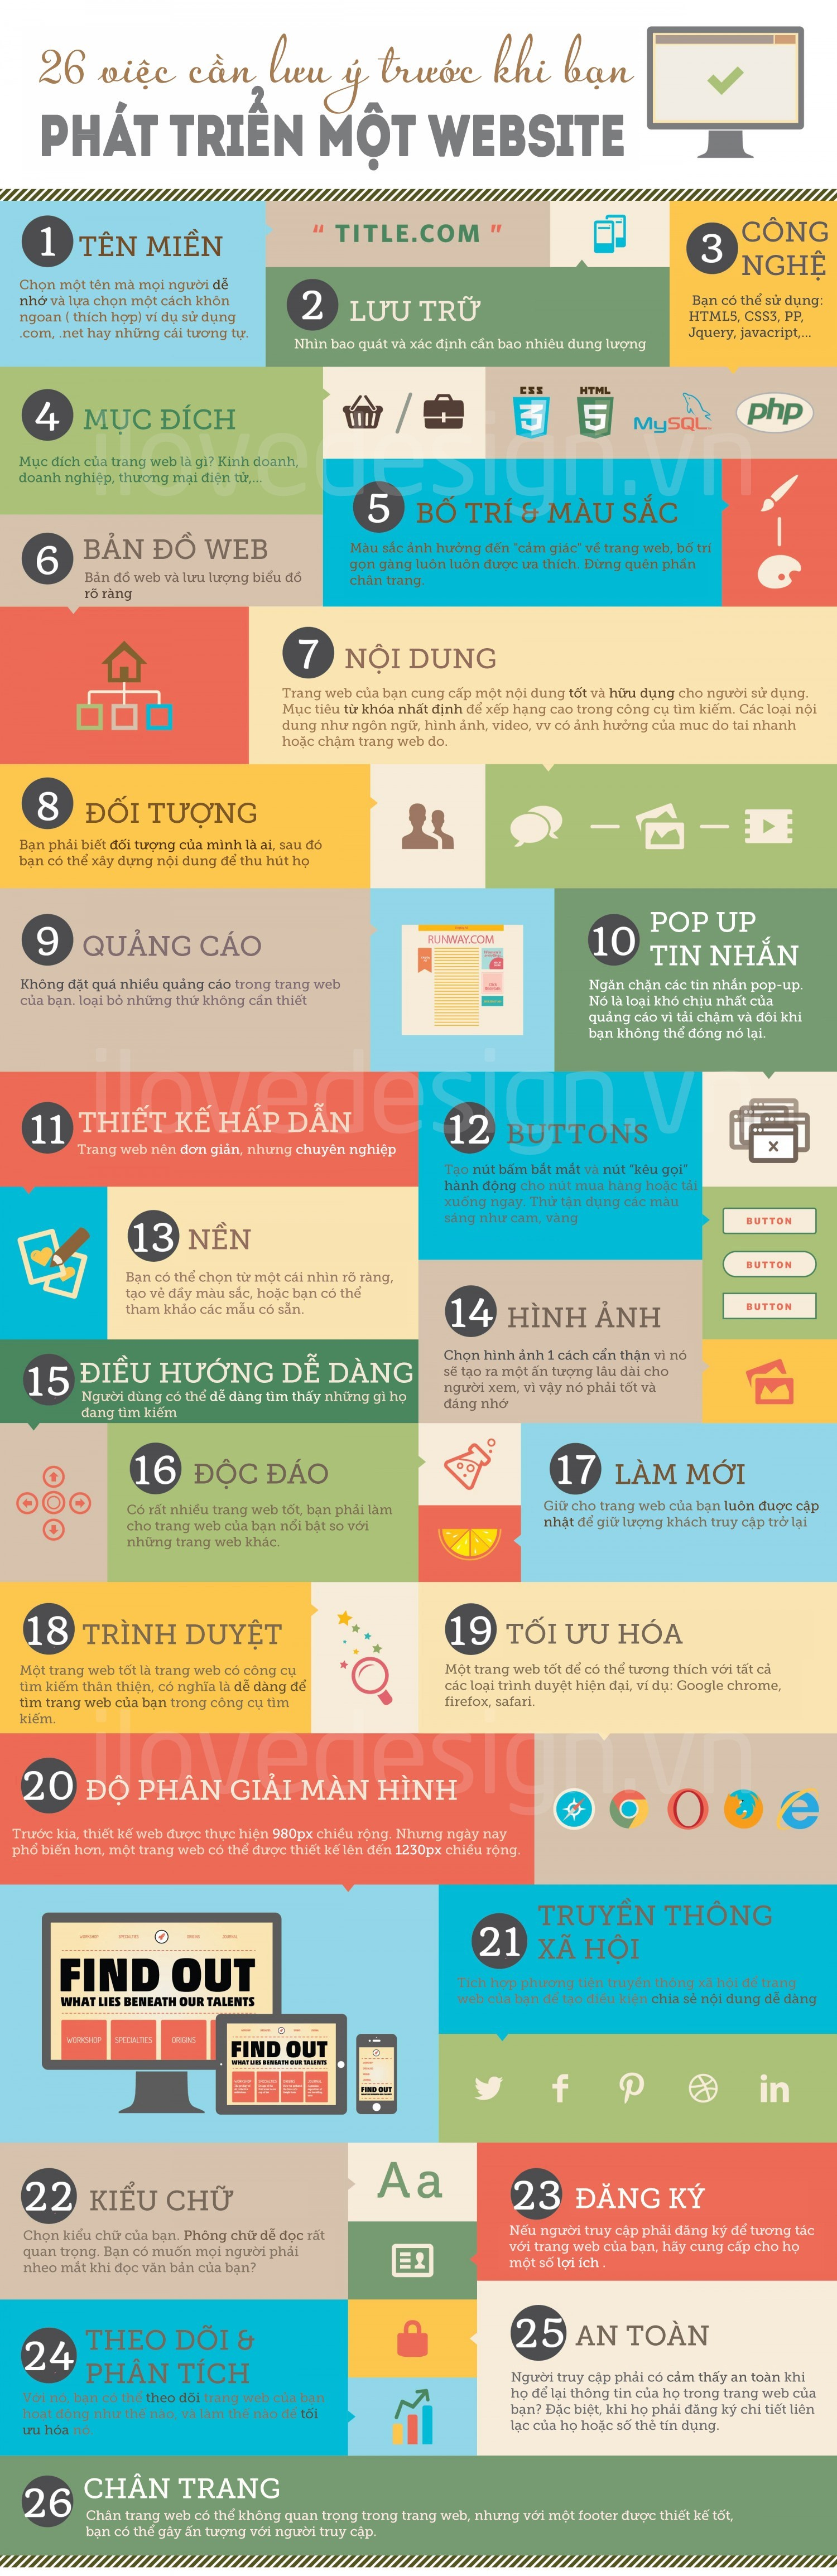 26-things-to-note-before-you-develop-a-website_vietsub-2